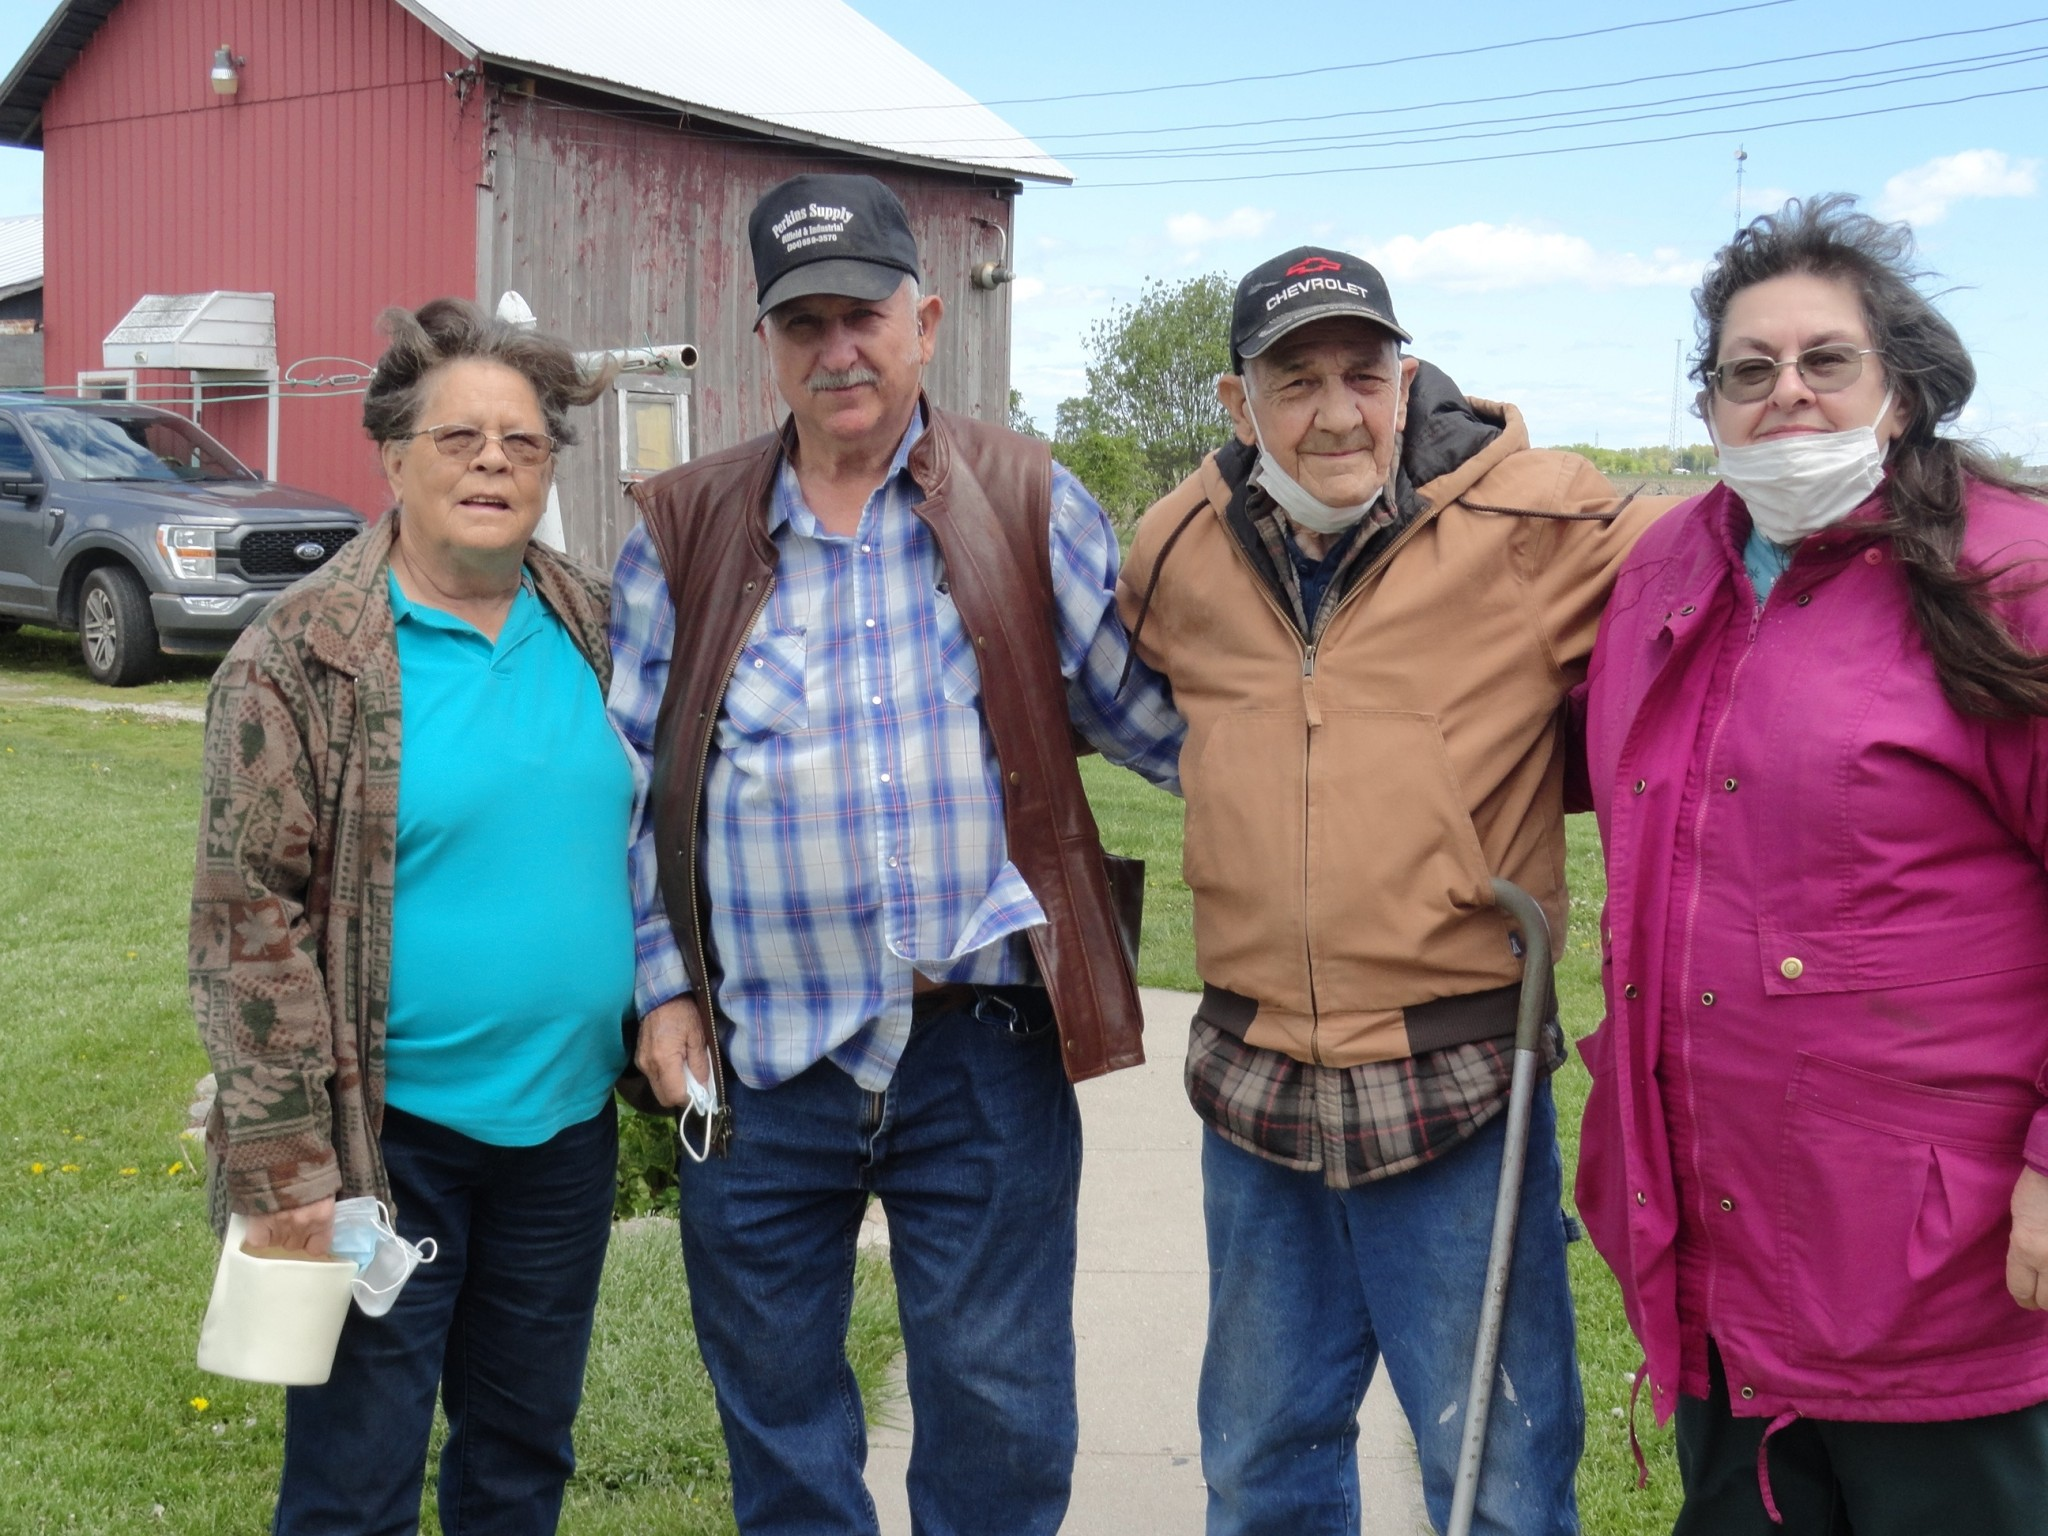 Nancy and Ralph Carpenter (left) made the trip from West Virginia to Northwest Ohio to visit Bernie and Nancy Smith on May 11. (Submitted photo)